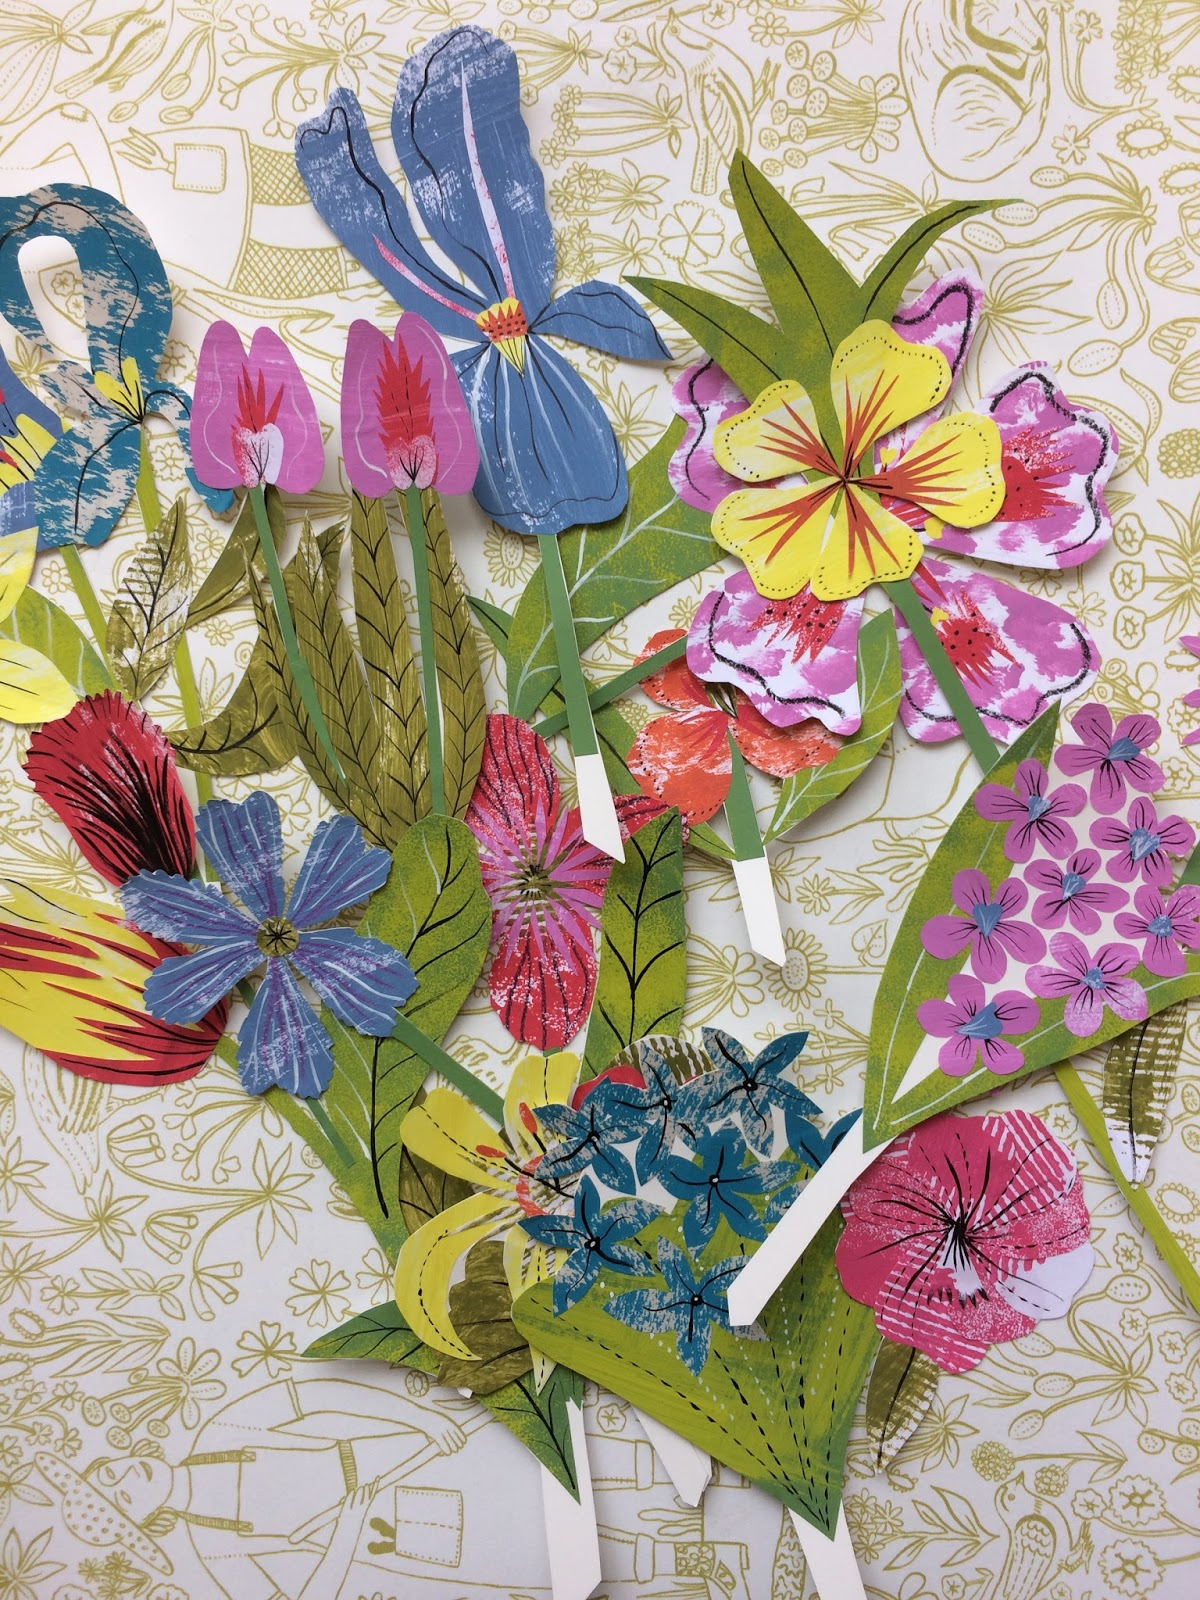 Alice pattullo paper flower arranging workshop yorkshire just a heads up that i will be running a paper flower arranging workshop at yorkshire sculpture park on the 16th spetember to coincide with the closing mightylinksfo